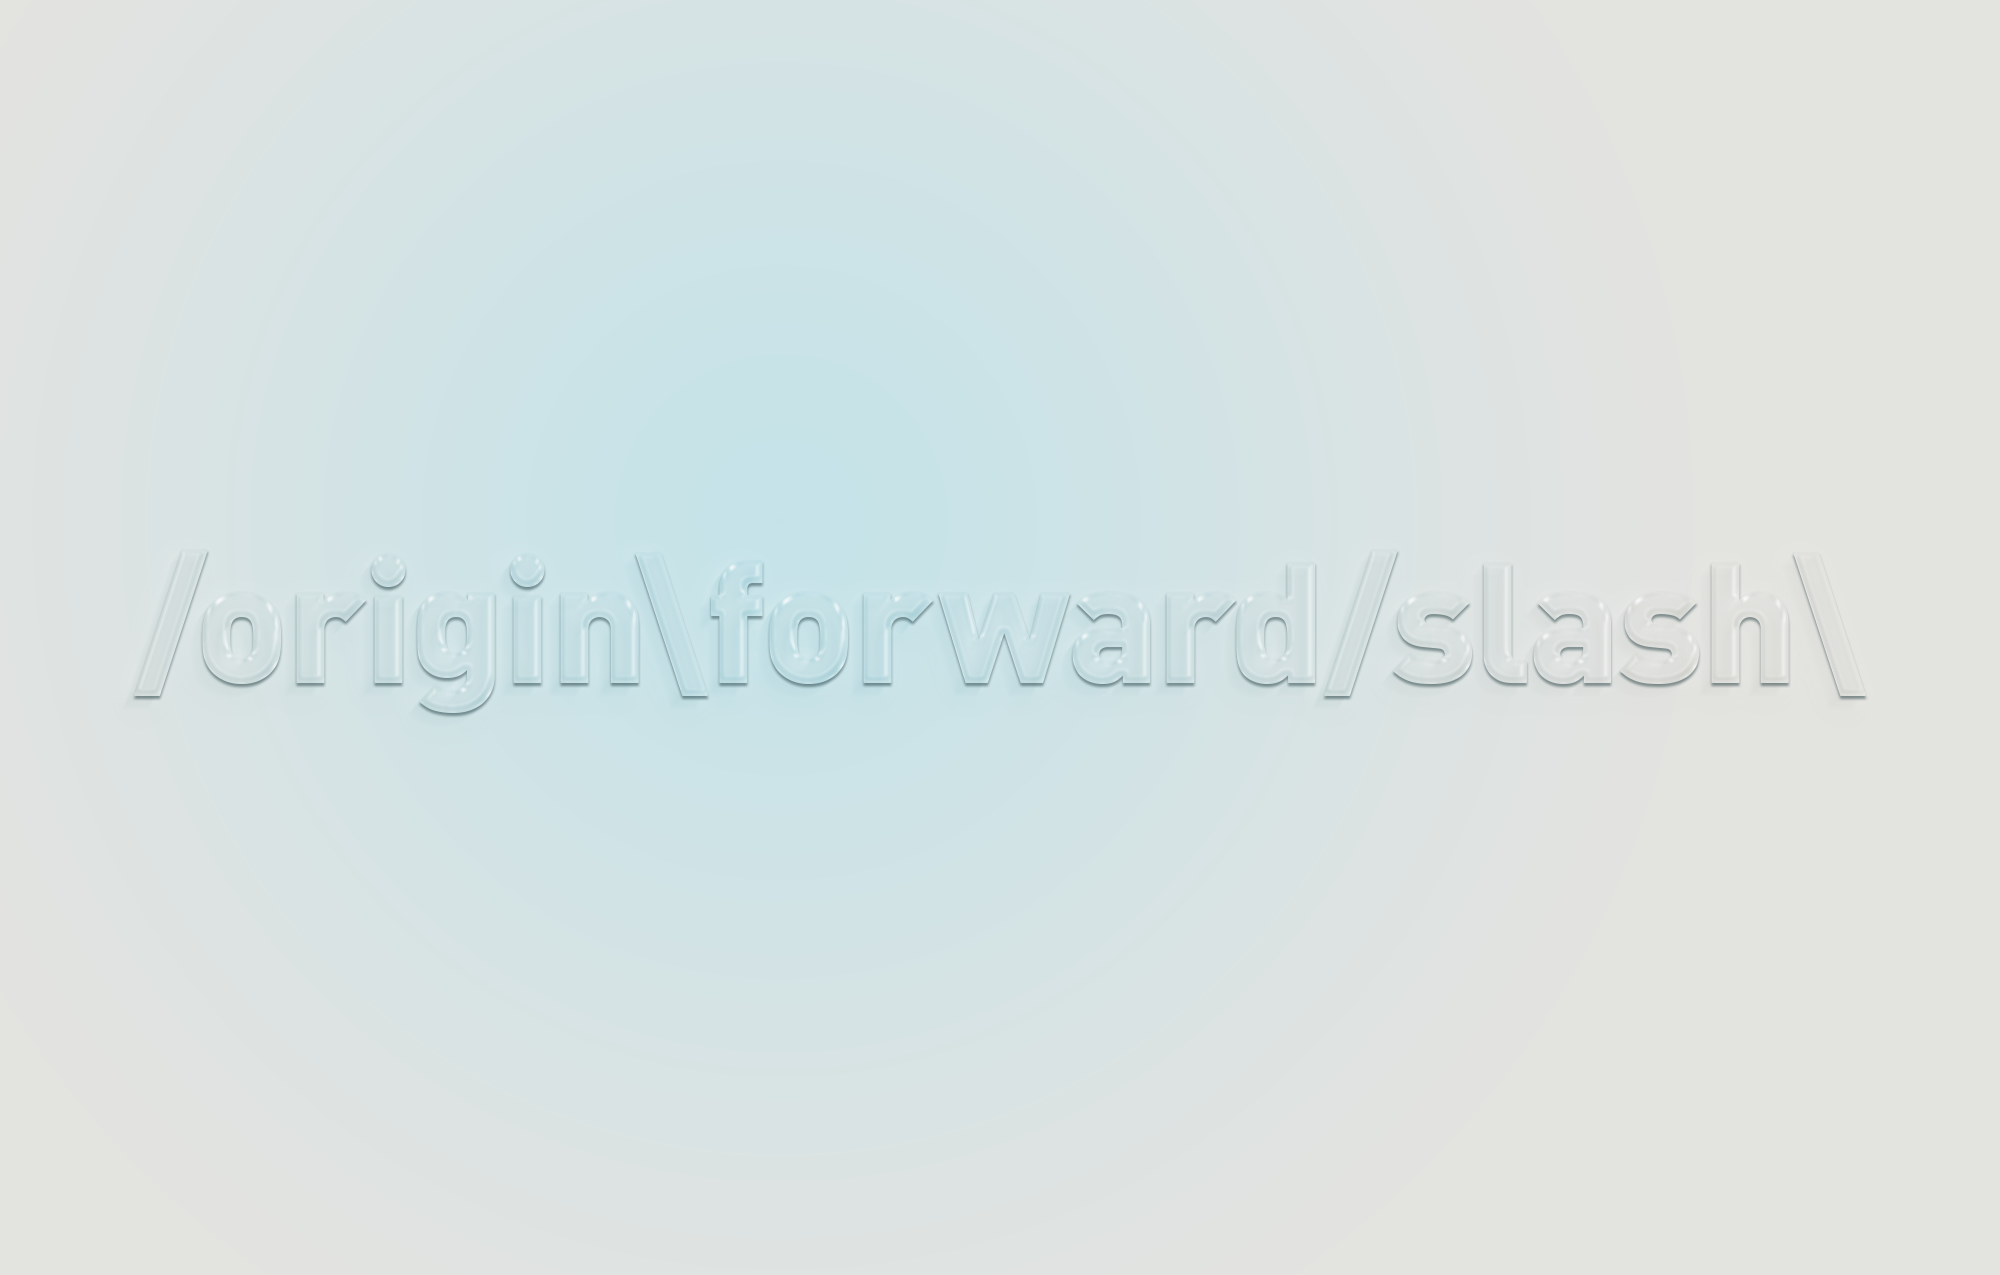 /origin\forward/slash\